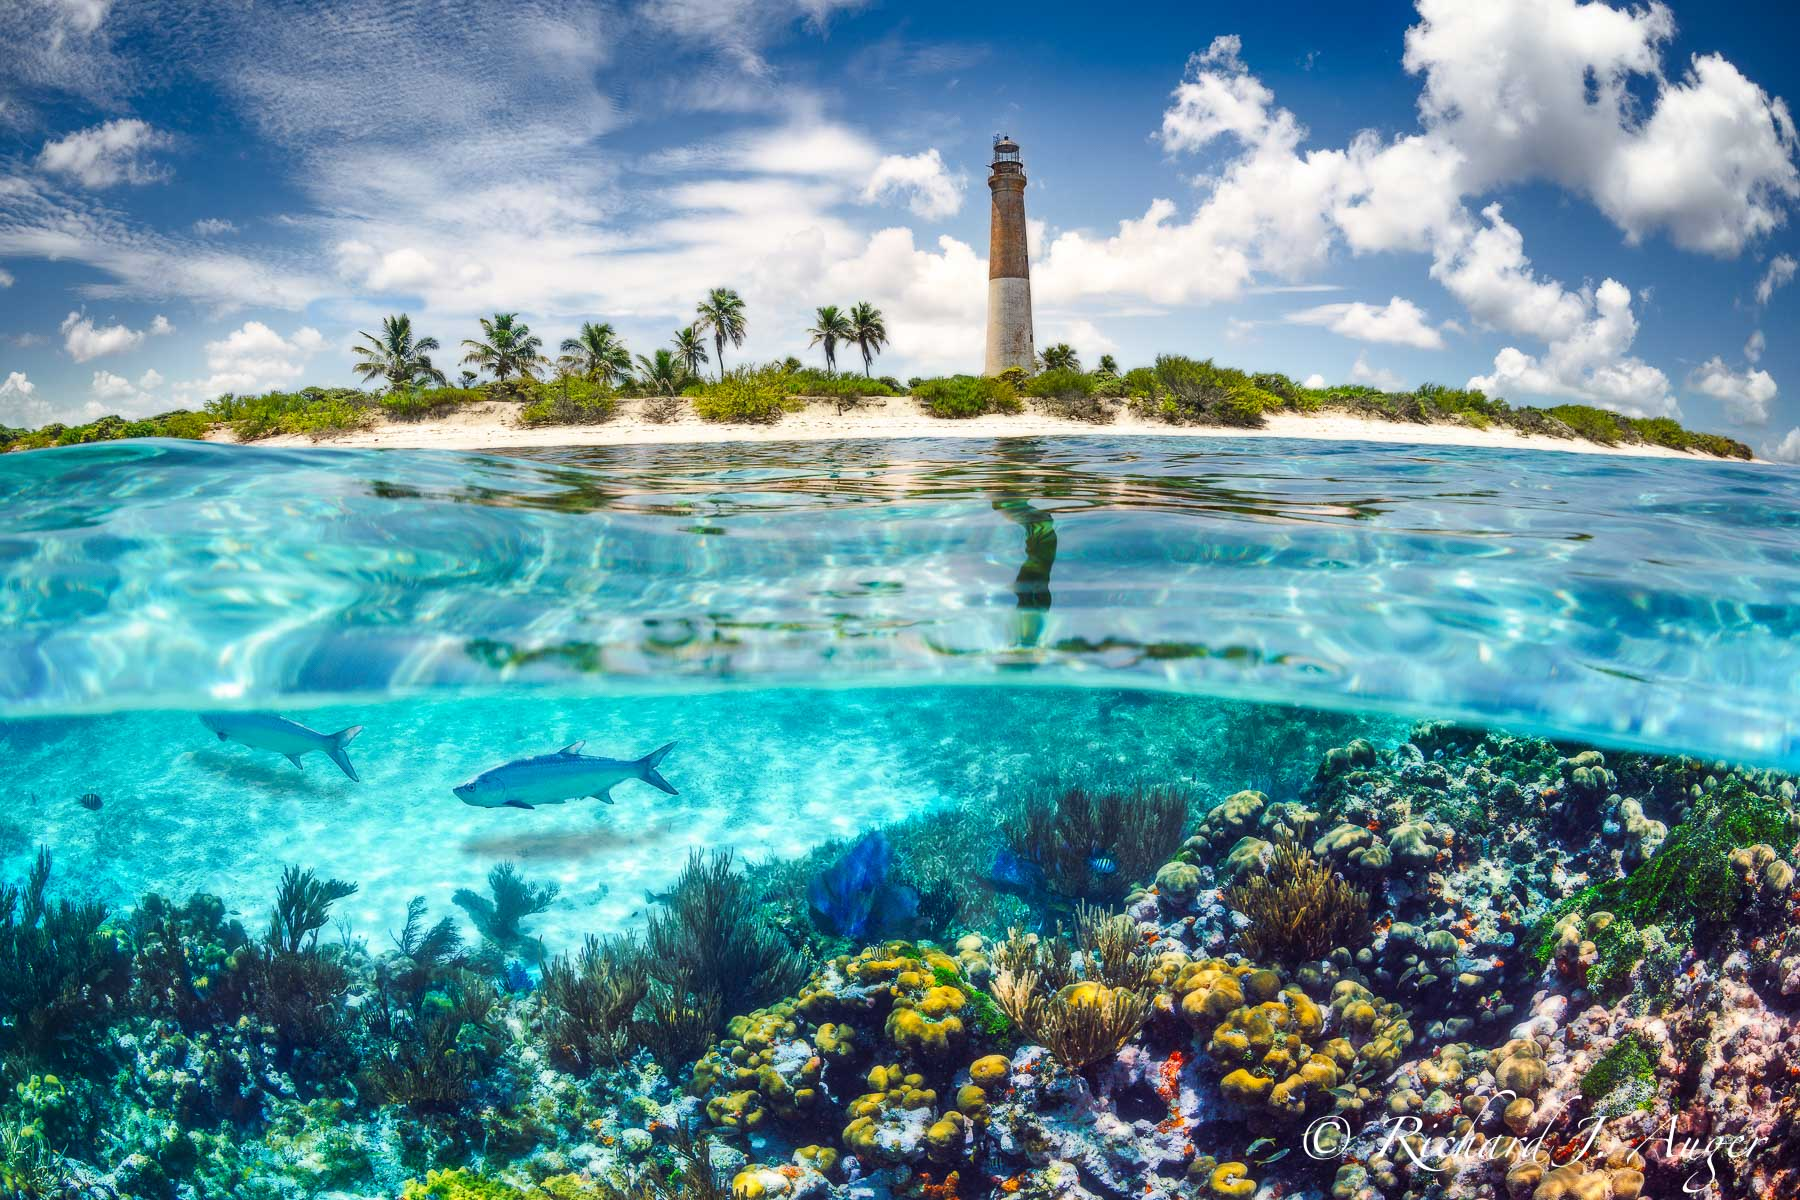 Dry Tortugas, Loggerhead Key, Lighthouse, Reef, Florida, Keys, National Park, Ocean, Underwater, Landscape, Photograph, Photographer, Richard Auger